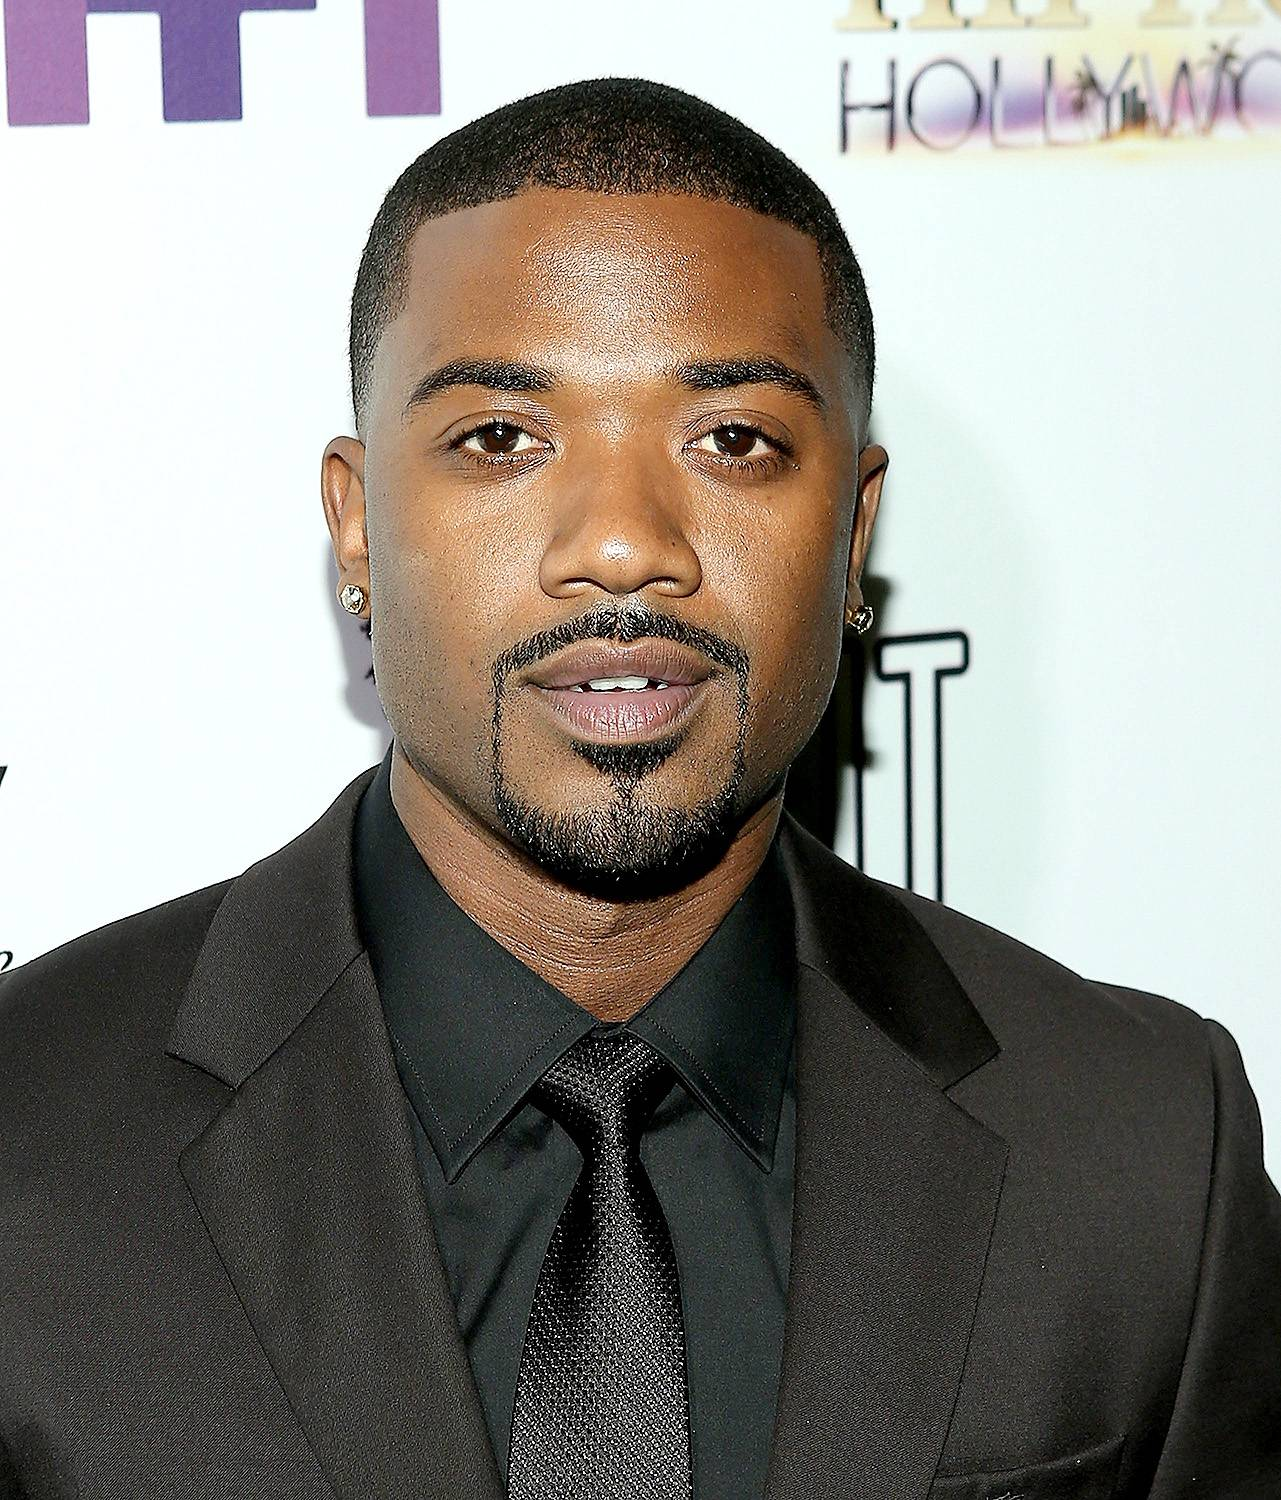 Ray J - December 15, 2014 - Ray J came back to co-host. Watch a clip now!